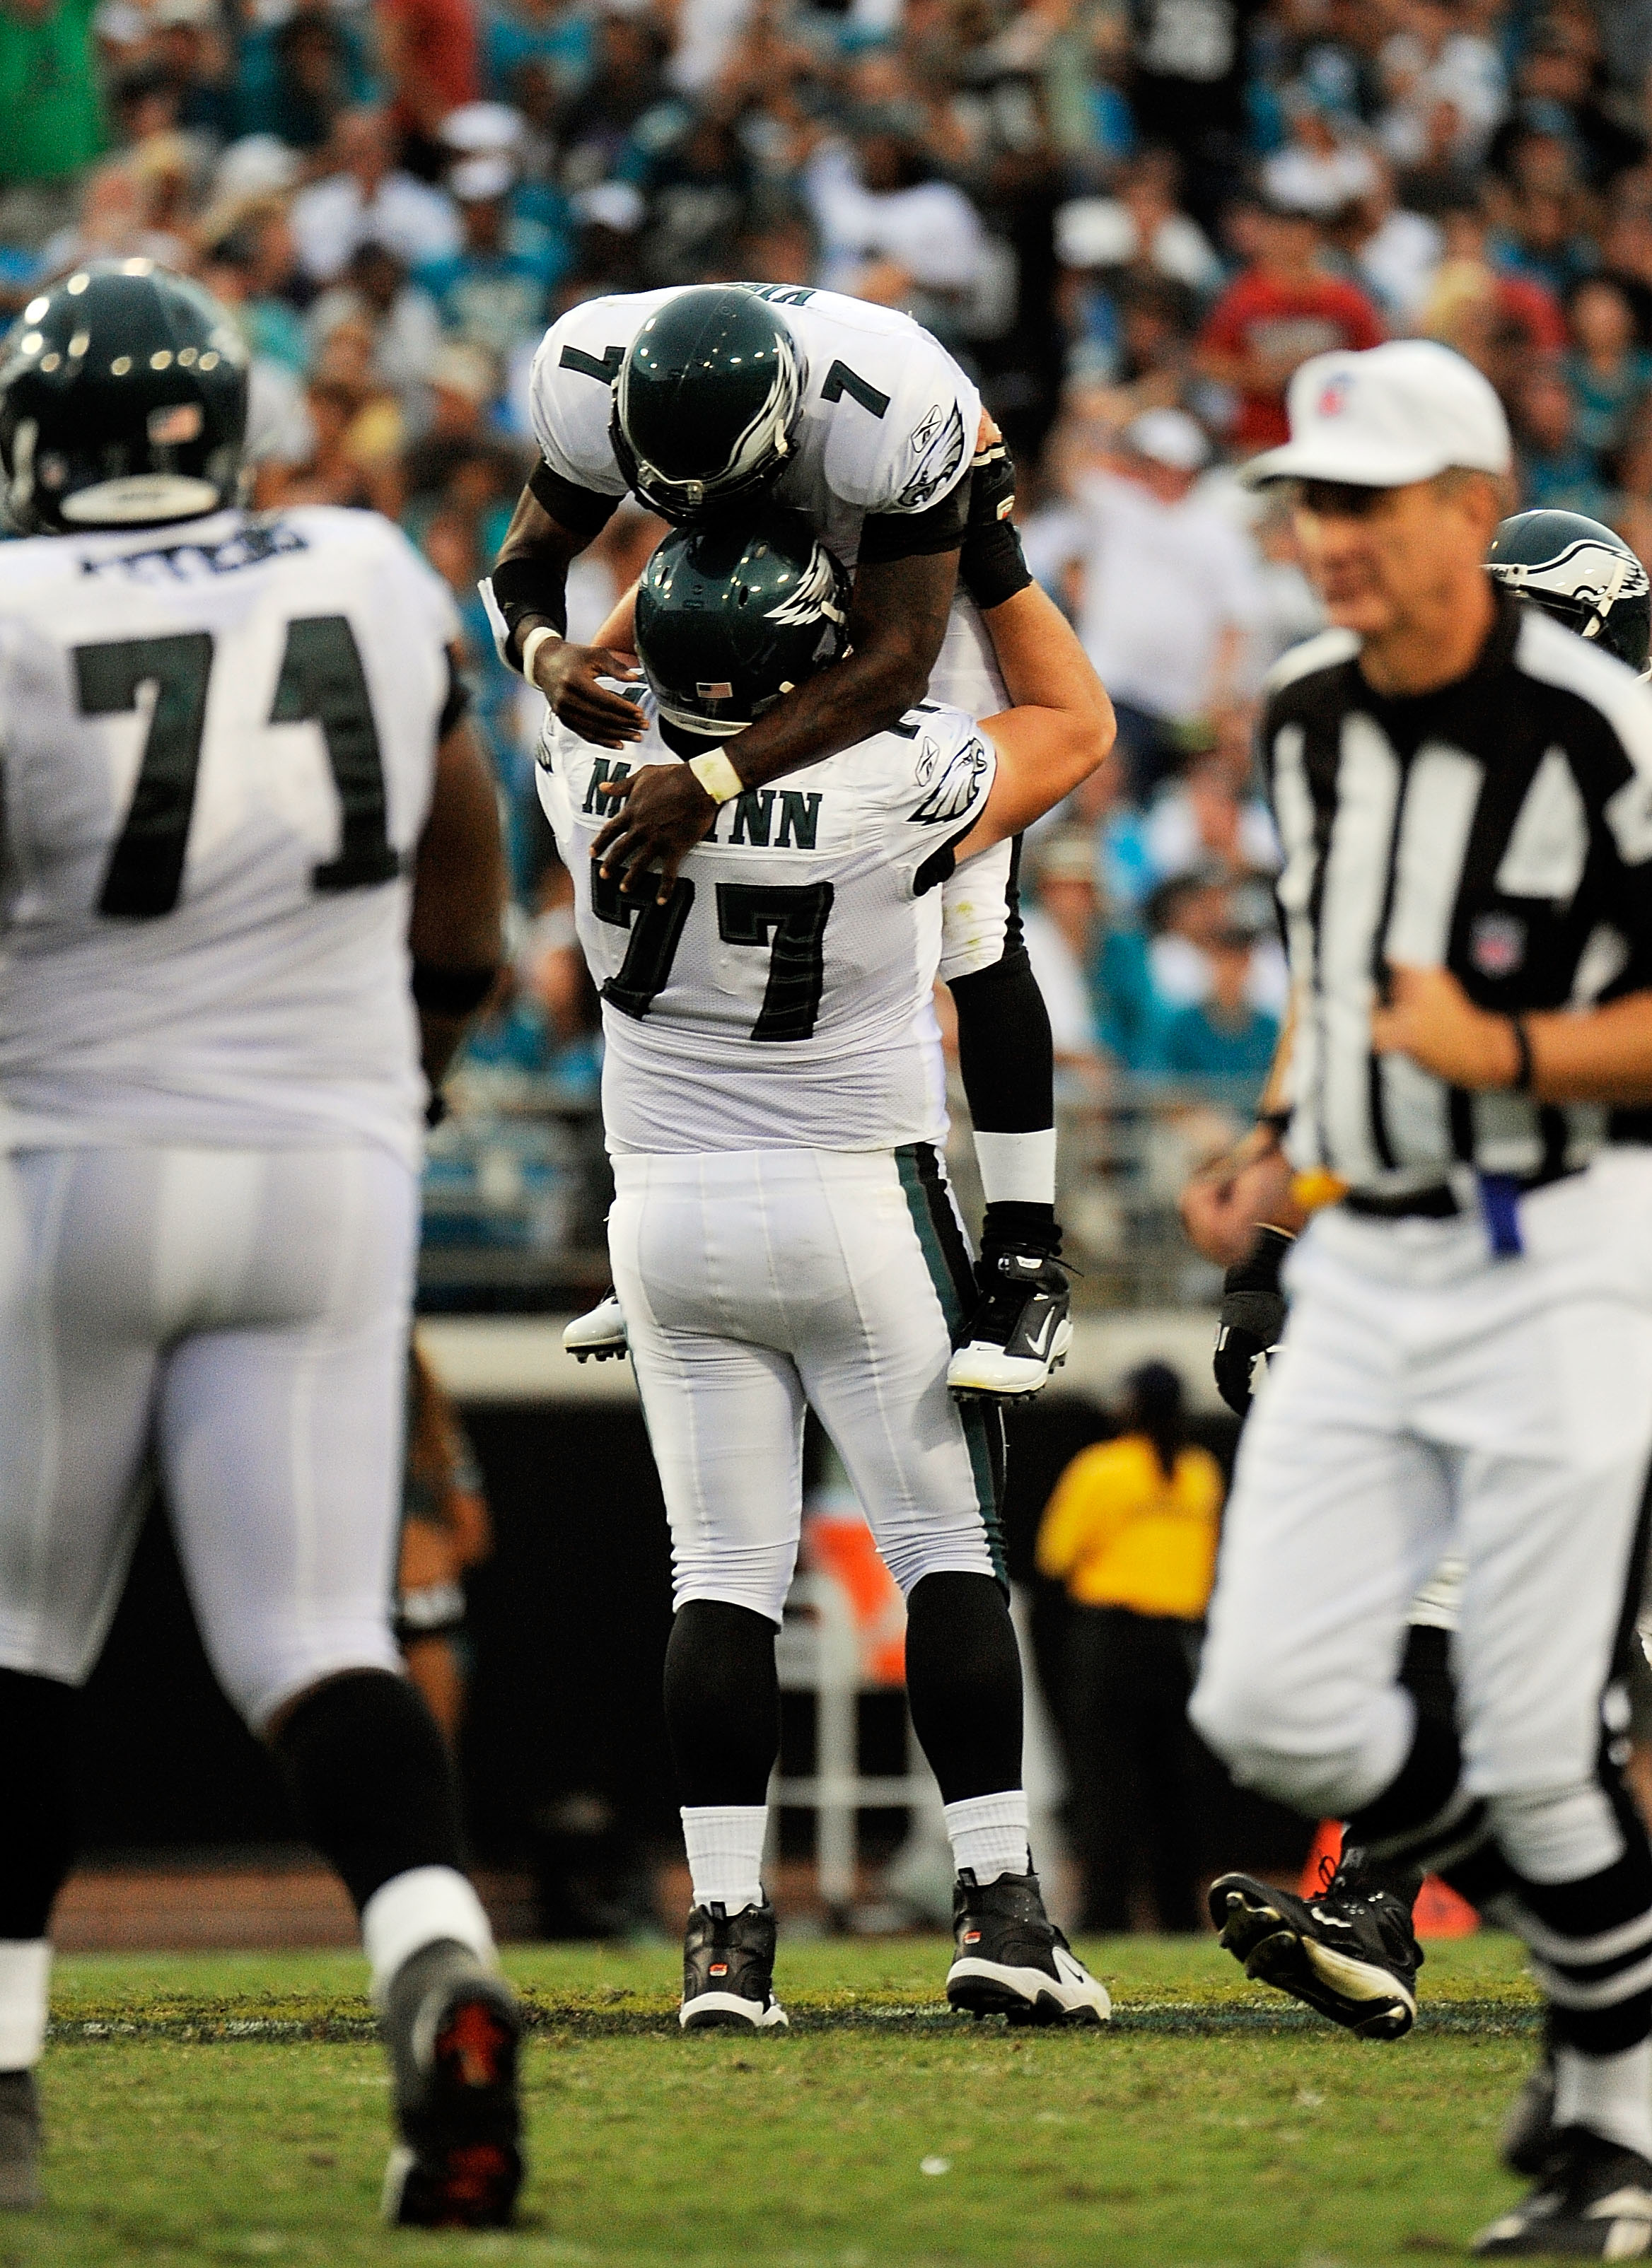 JACKSONVILLE, FL - SEPTEMBER 26:  Quarterback Michael Vick #7 of the Philadelphia Eagles is congratulated by offensive lineman Mike McGlynn #77 after throwing a touchdown pass to wide receiver Jeremy Maclin #18 against the Jacksonville Jaguars at EverBank